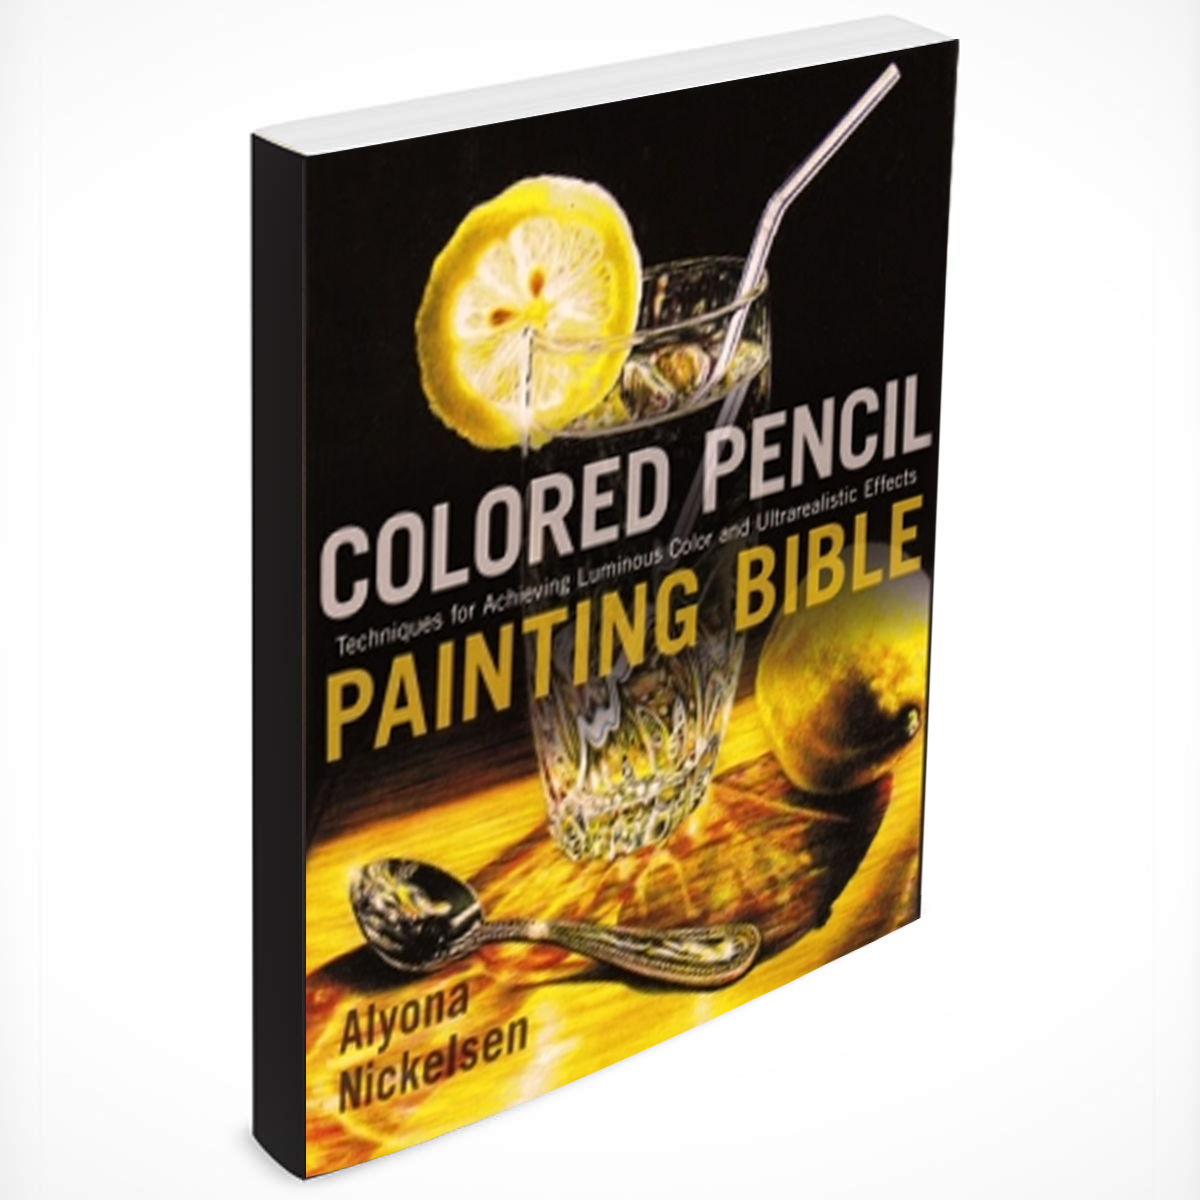 colored pencil painting bible epub